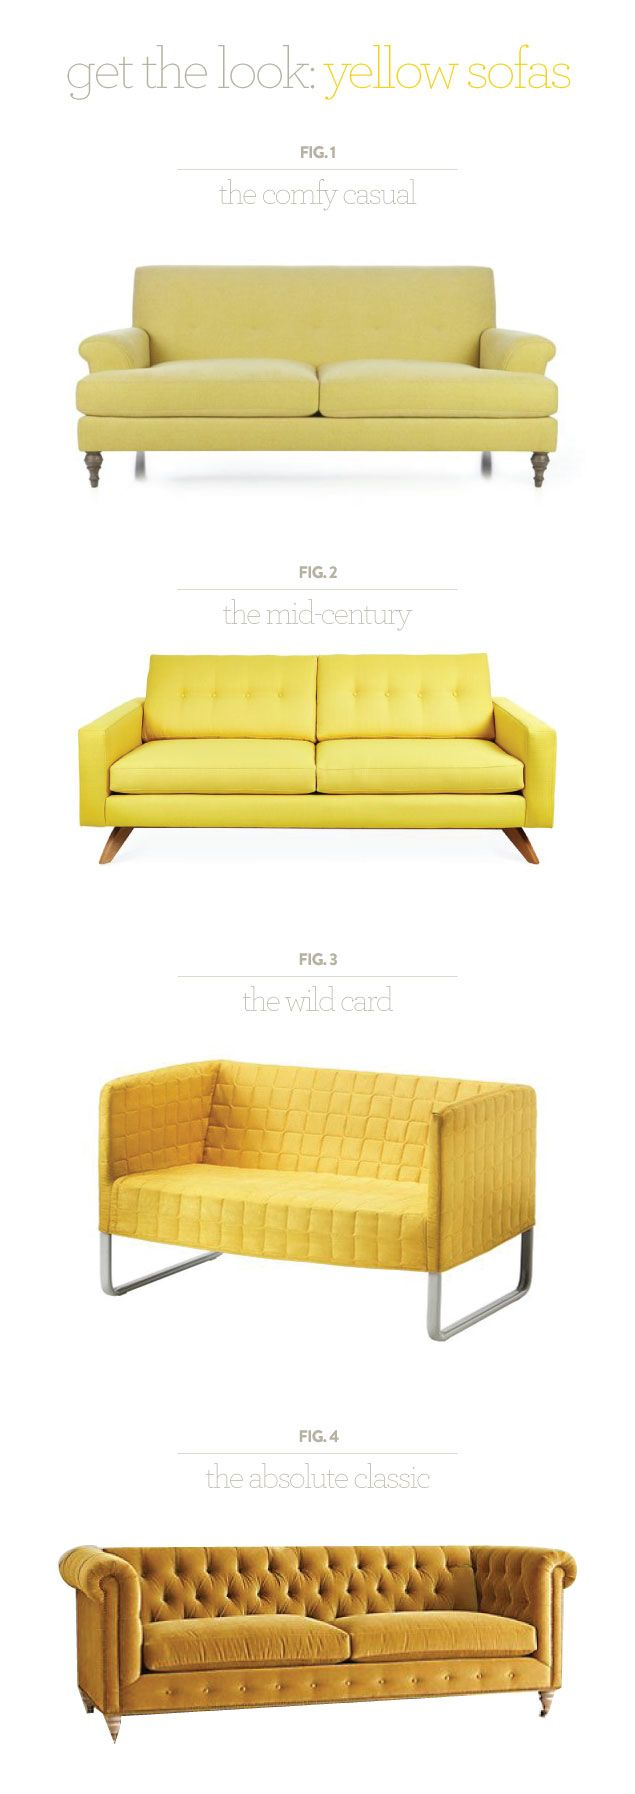 Sofa removable free spirited and flexible d 233 sir 233 e - Get The Look Yellow Sofas